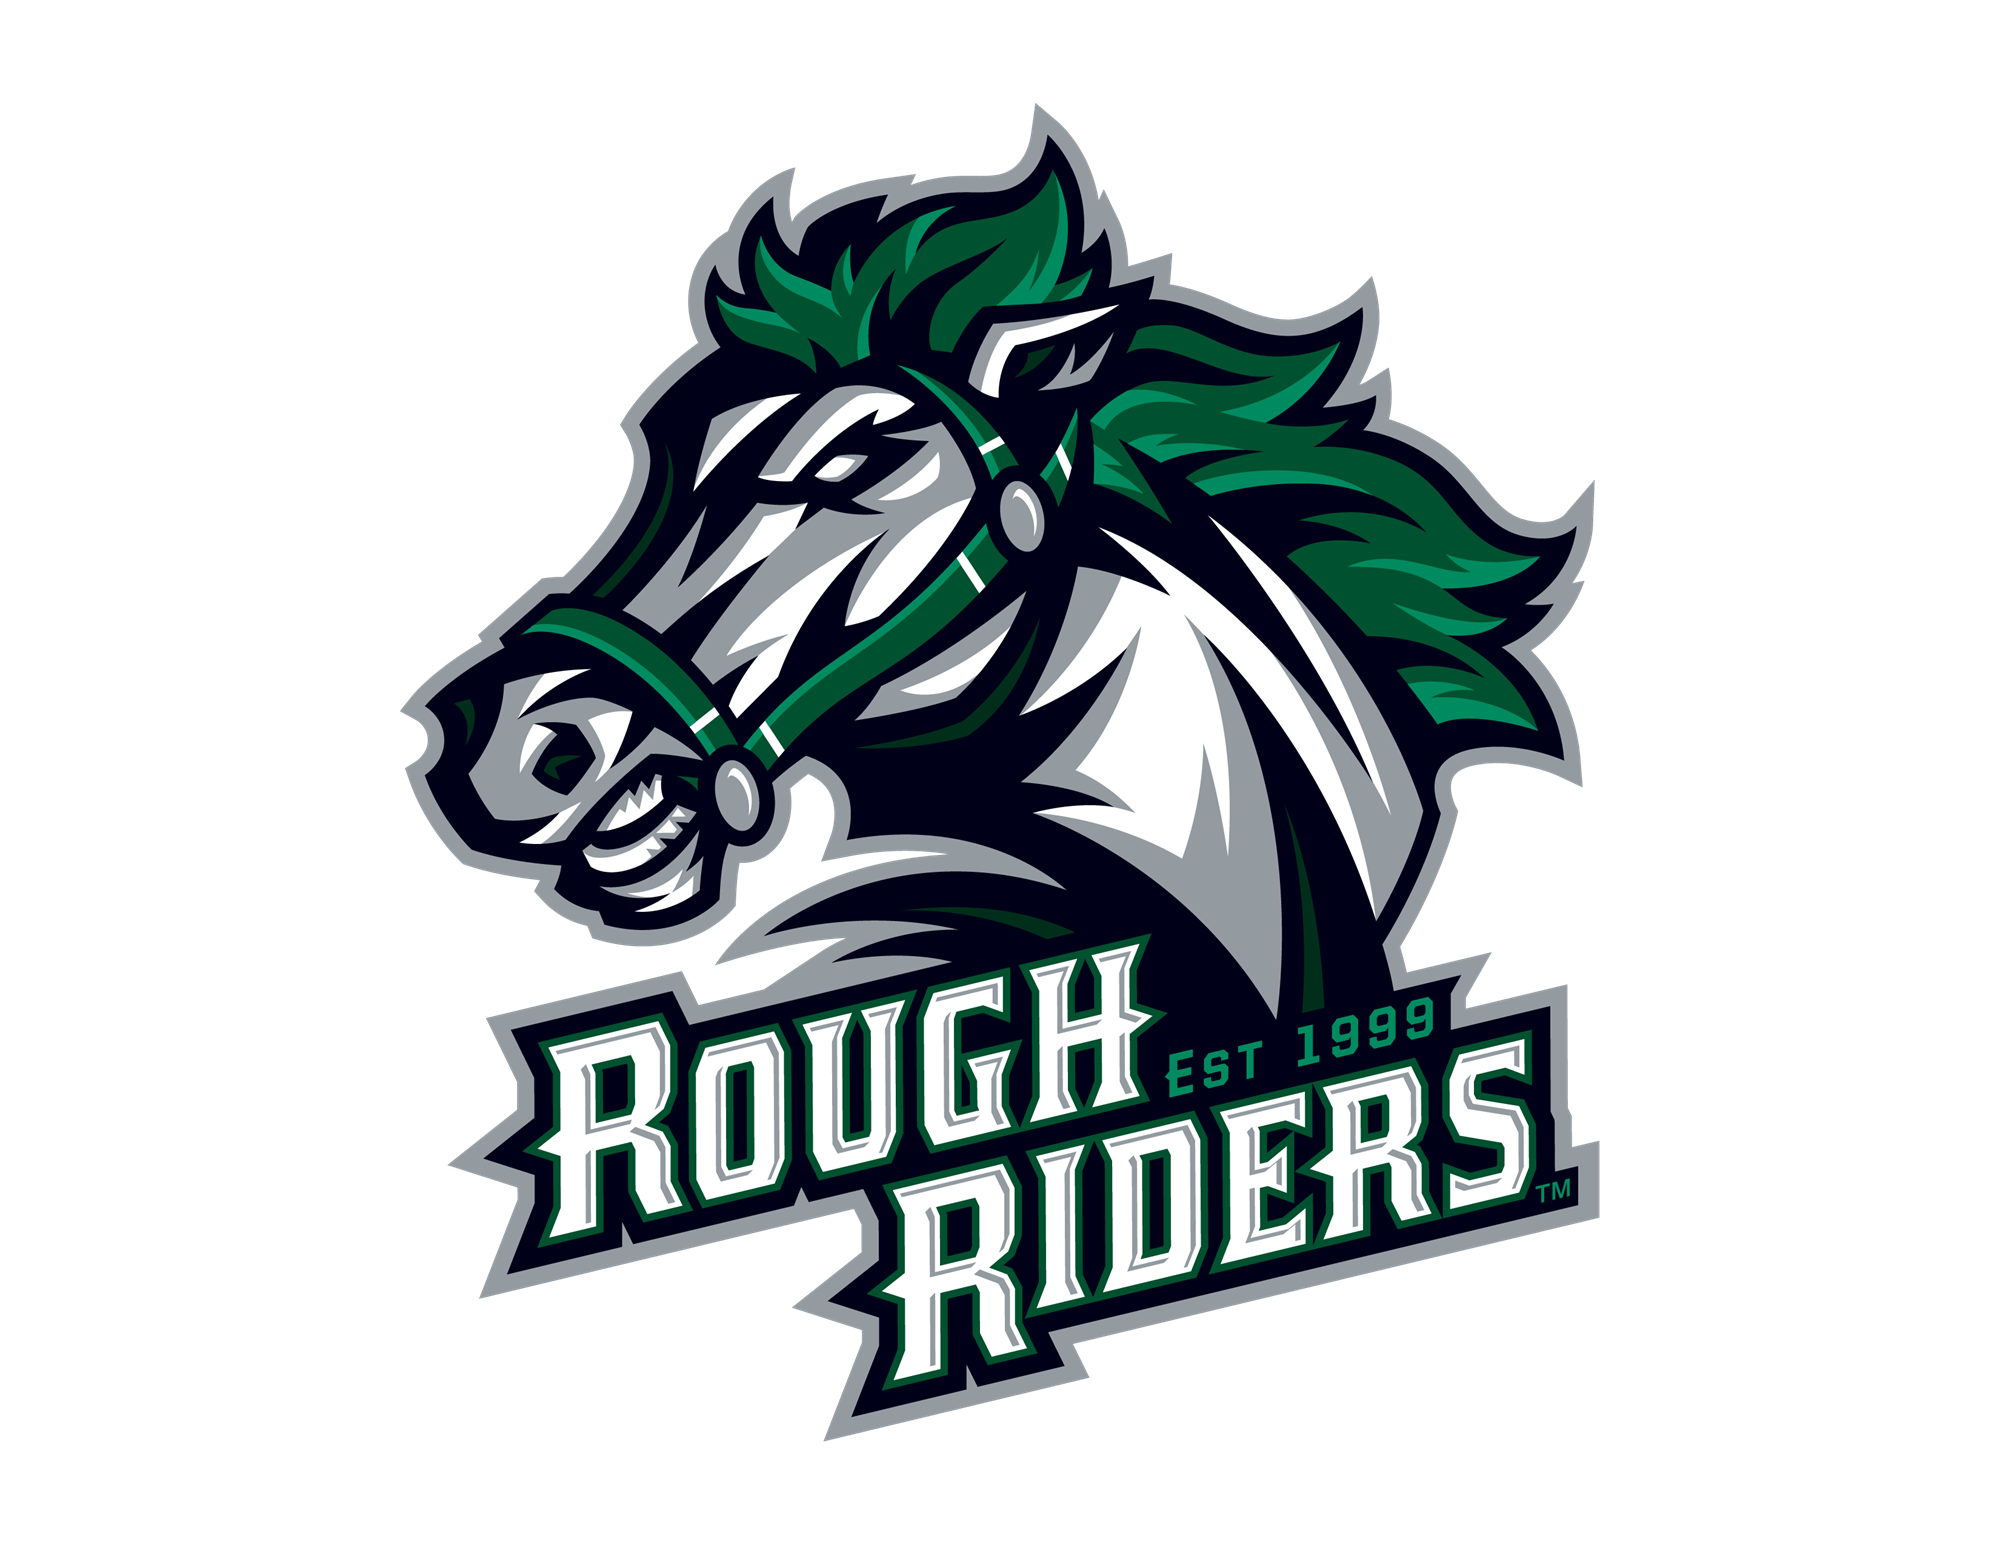 RoughRiders Angry Horse